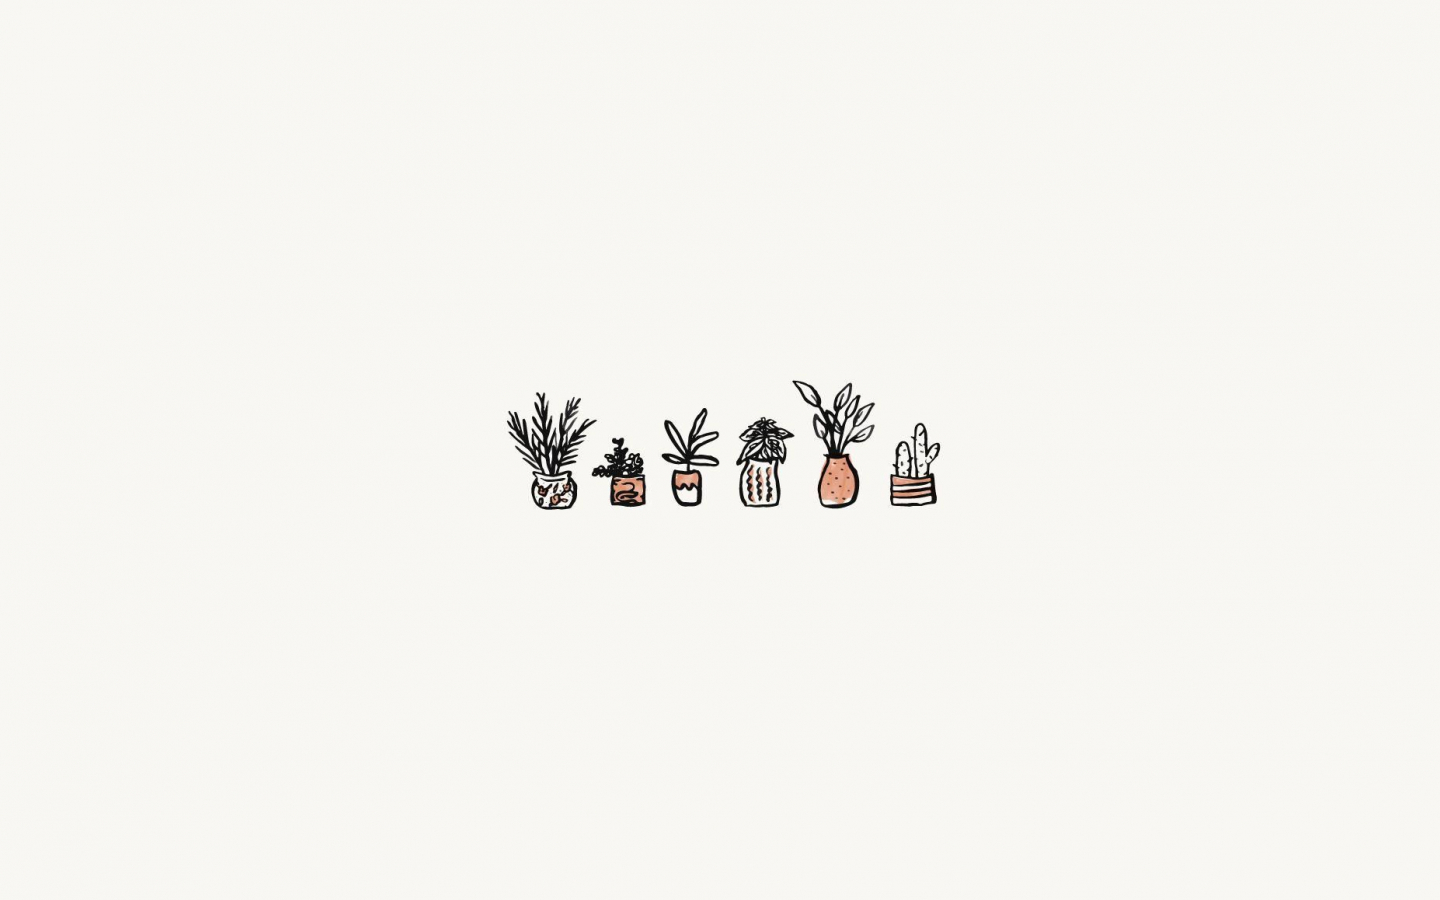 Free download Best Of High Resolution Minimalist Aesthetic ...